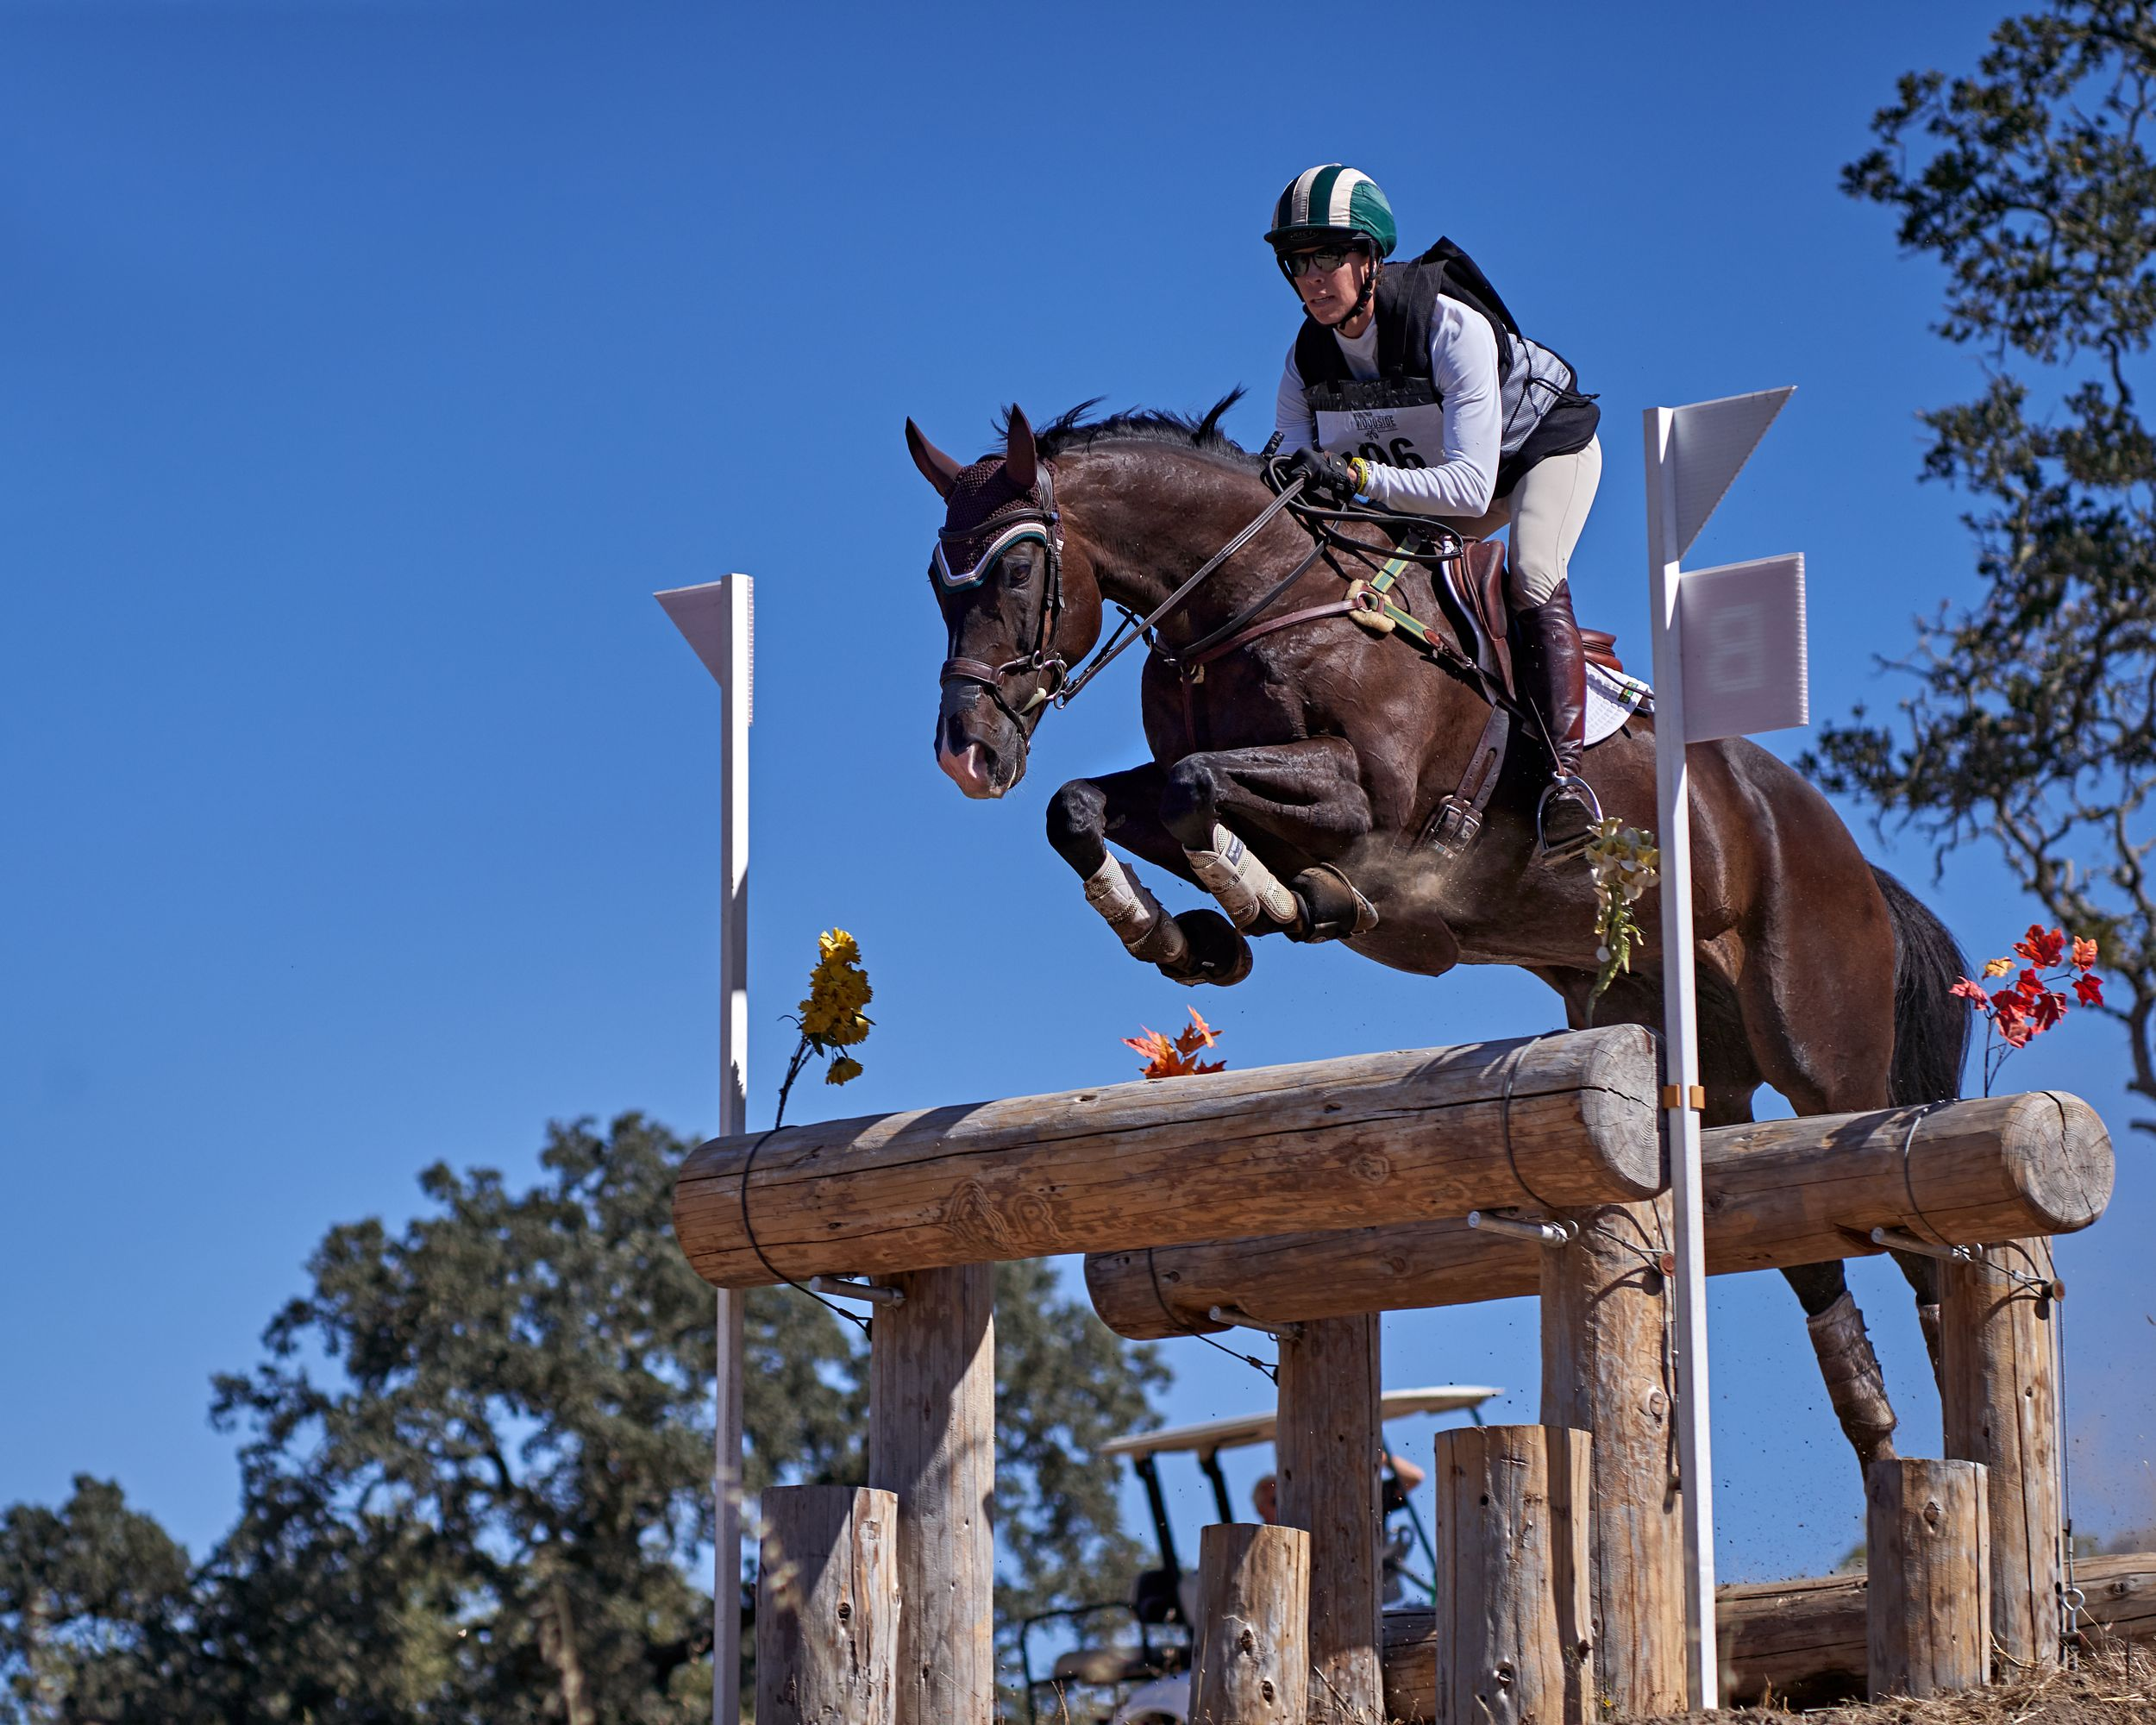 Cross Country Jumping at the Horse Park at Woodside